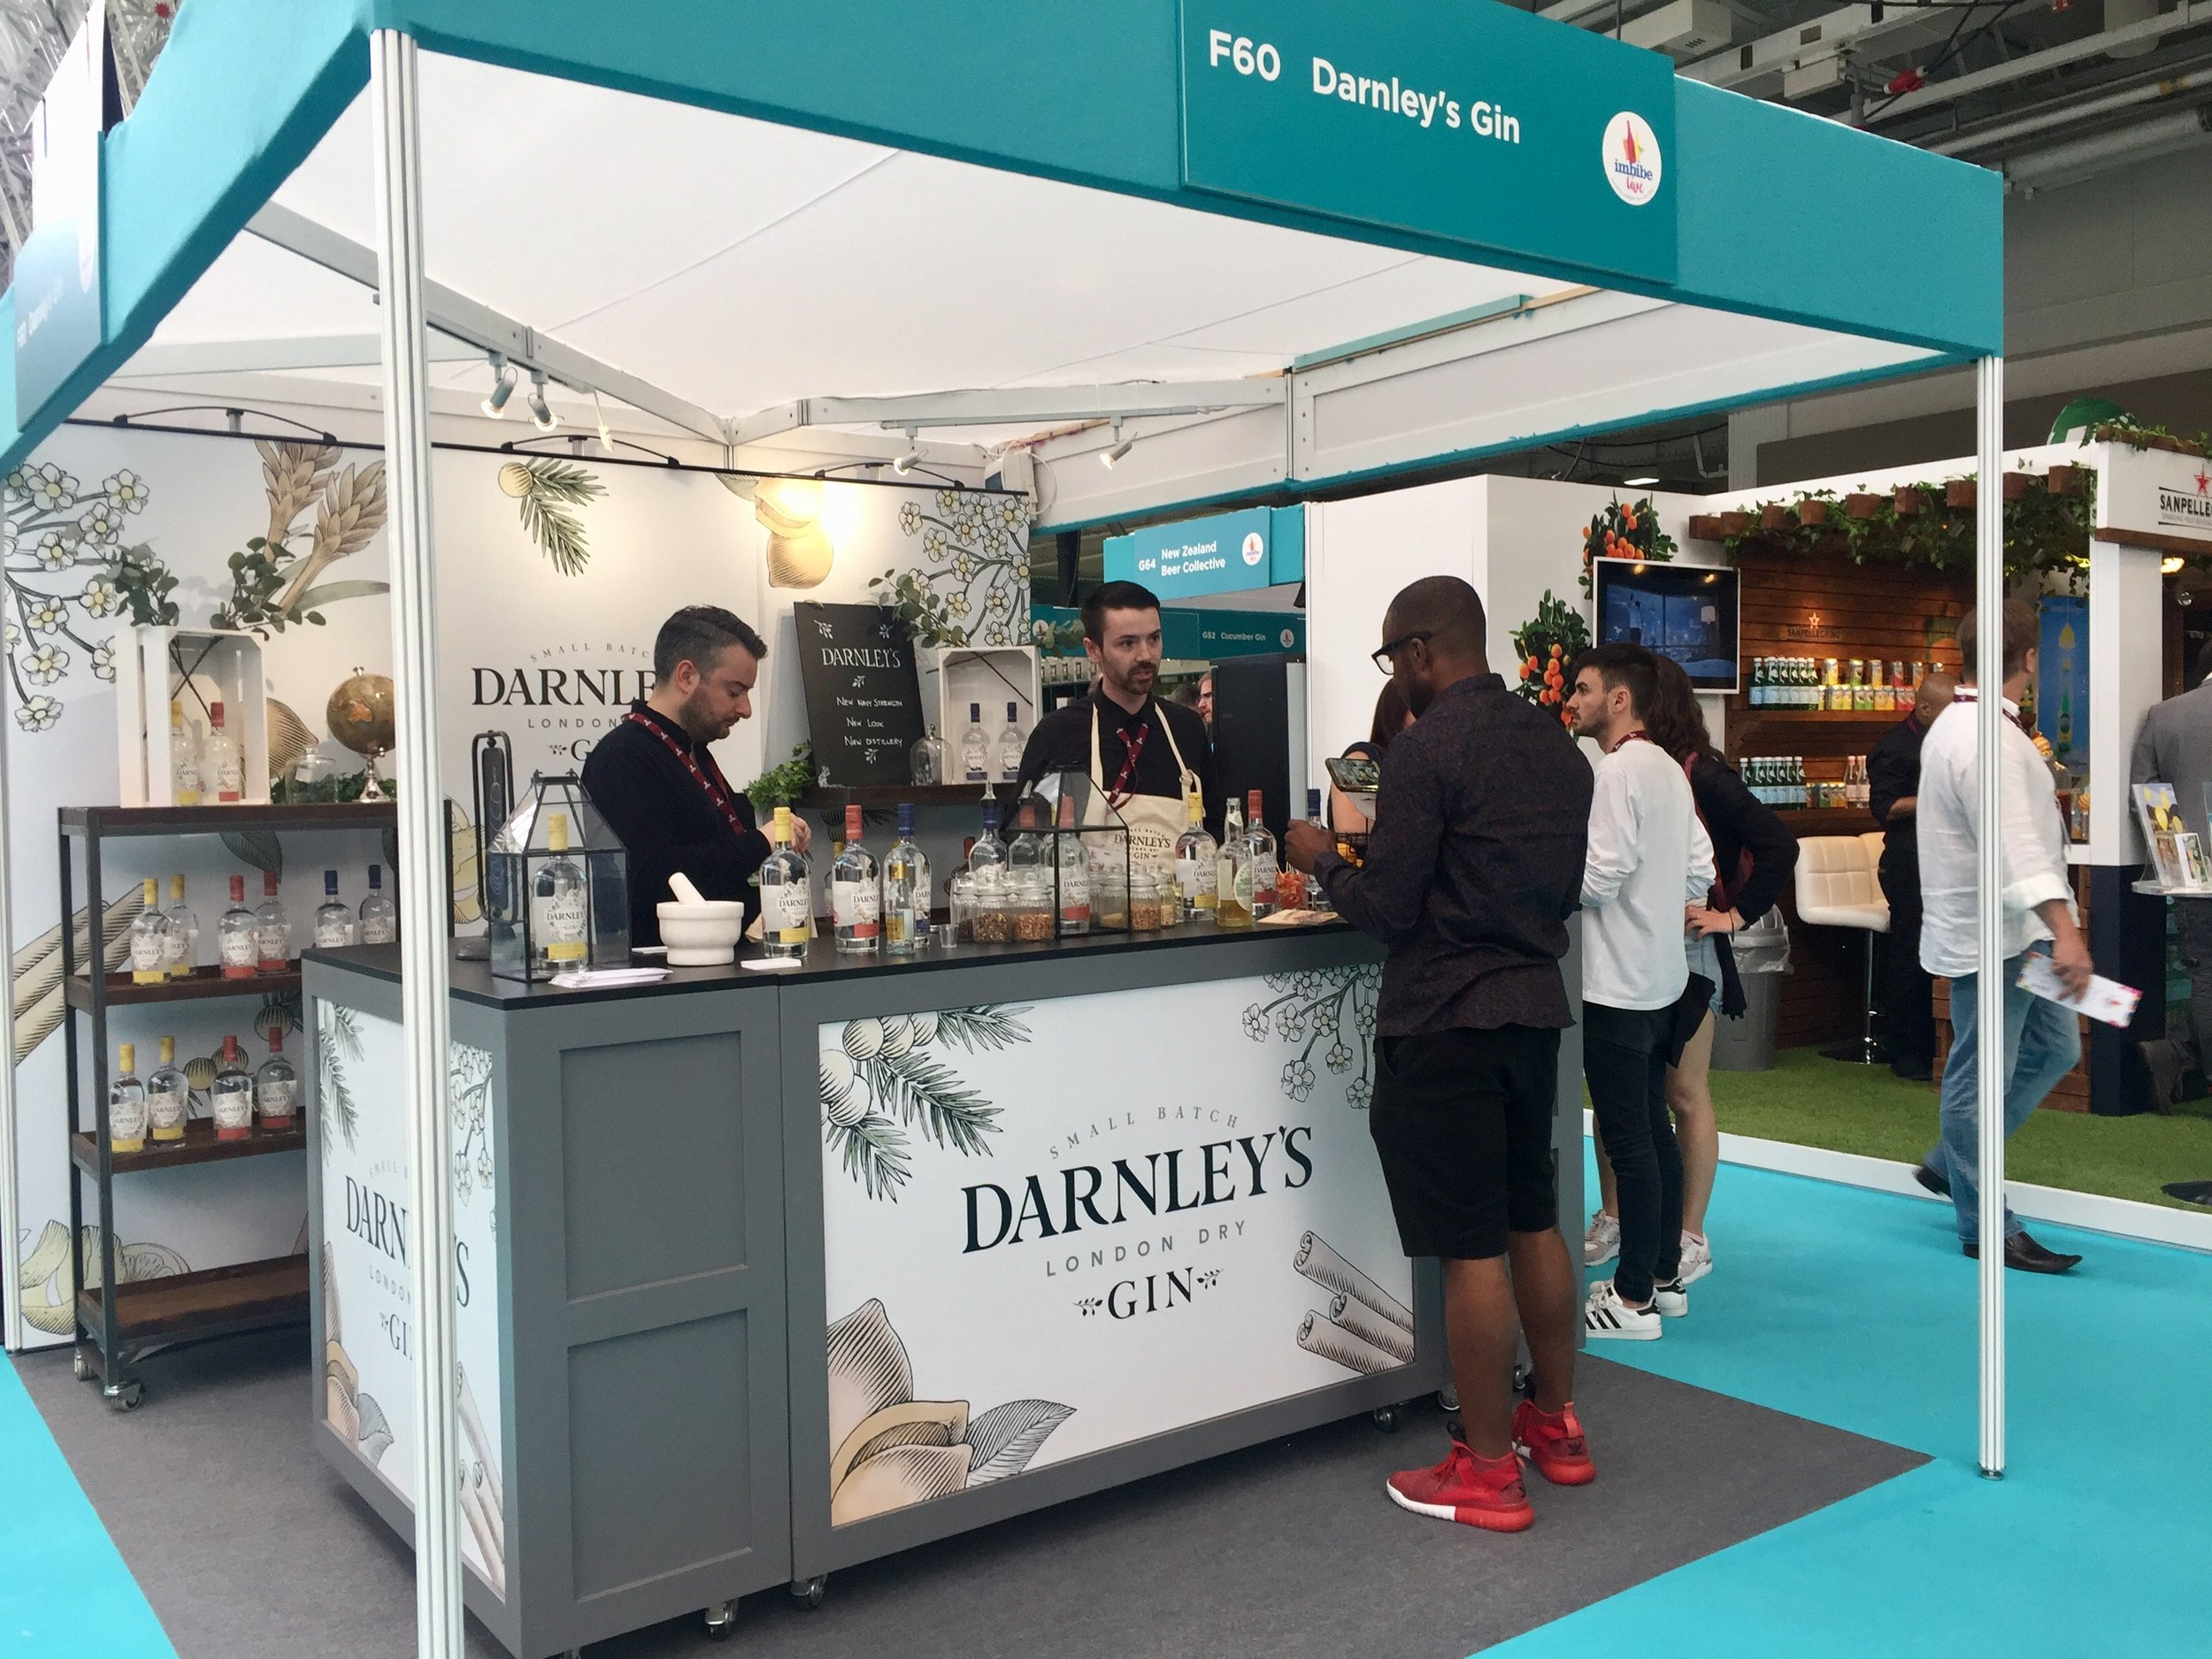 The Darnley's Gin stand we created for Imbibe Live 2017